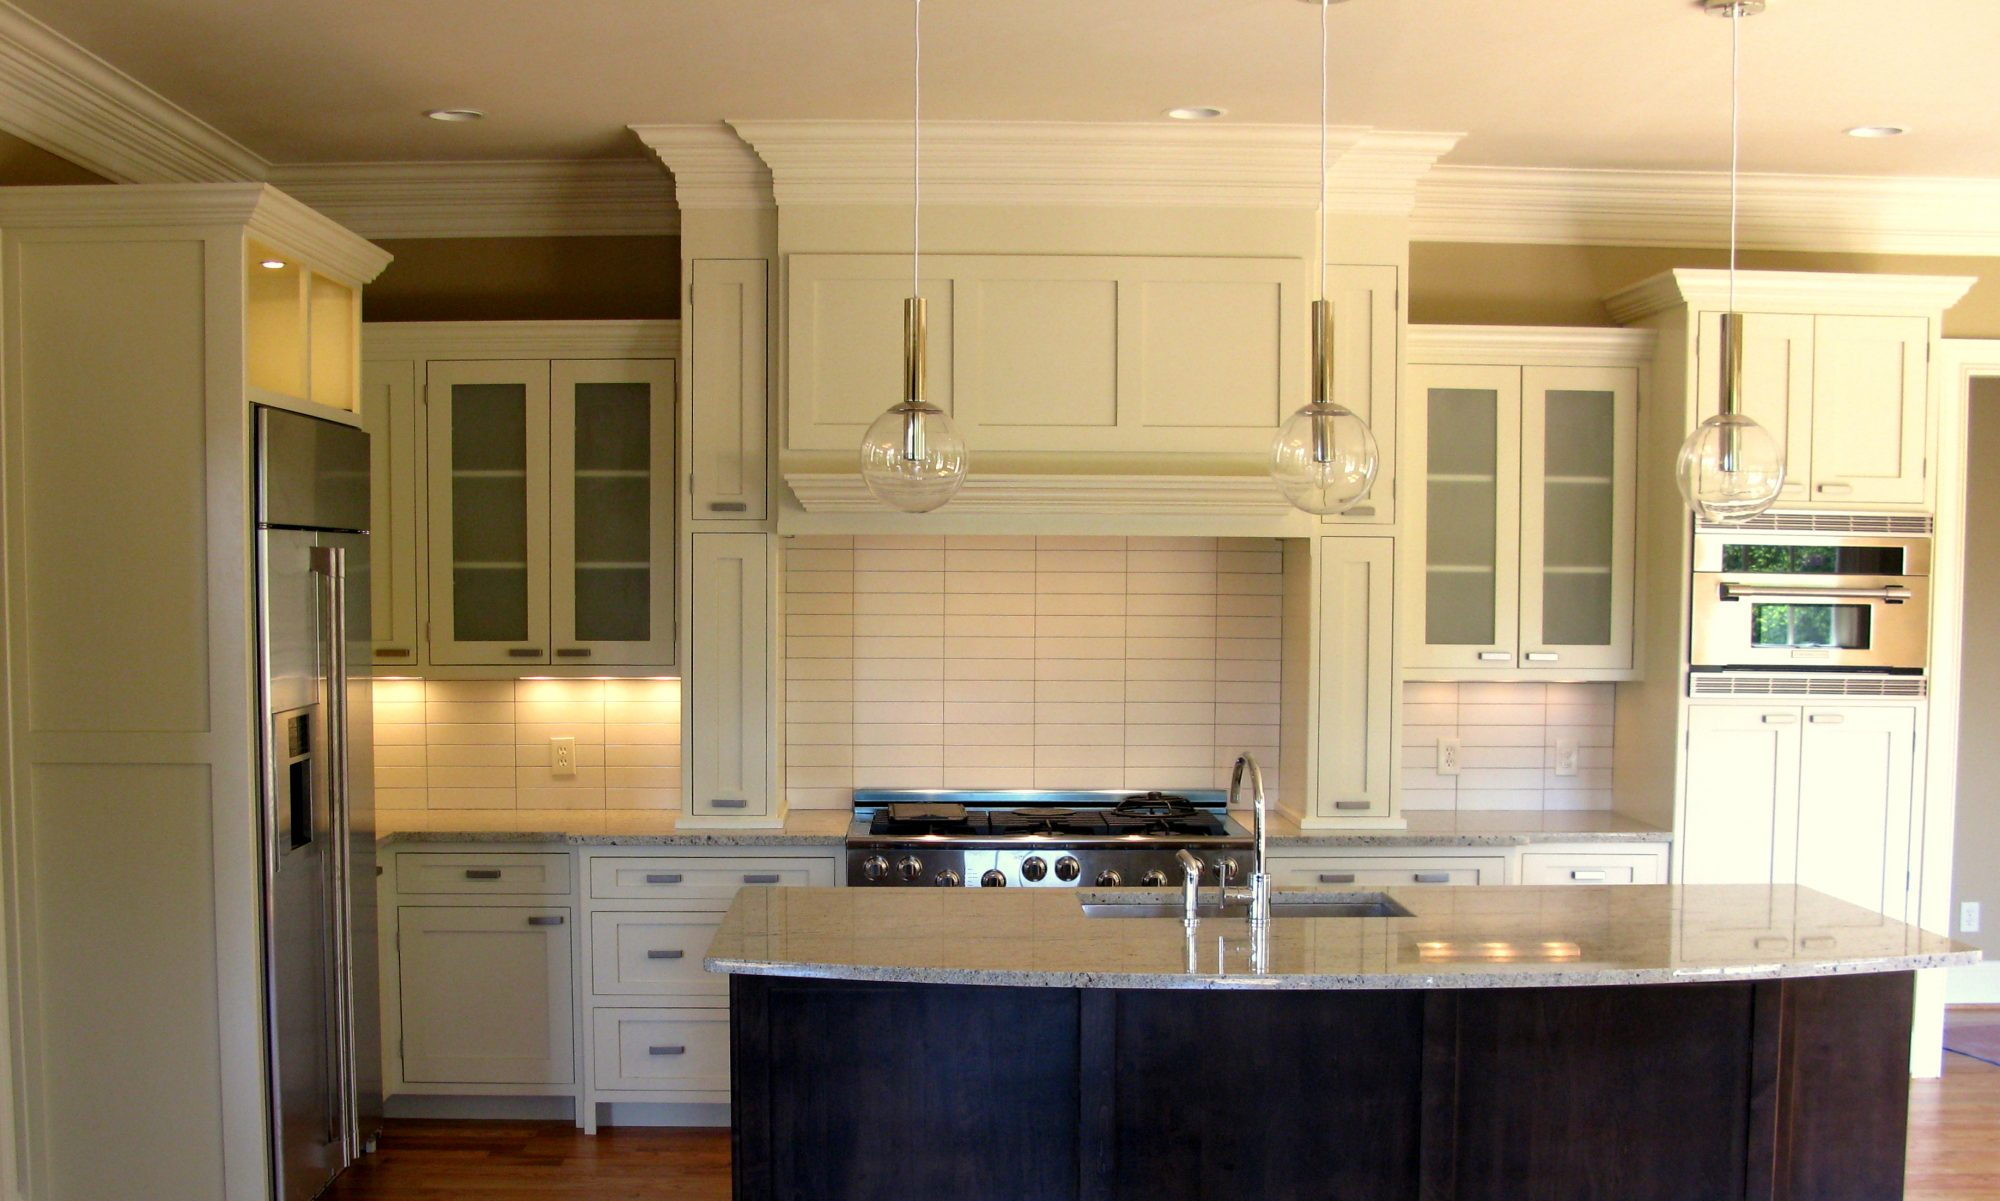 Custom Cabinetry-Fort Myers Home Remodeling Team-We do kitchen & bath remodeling, home renovations, custom lighting, custom cabinet installation, cabinet refacing and refinishing, outdoor kitchens, commercial kitchen, countertops and more